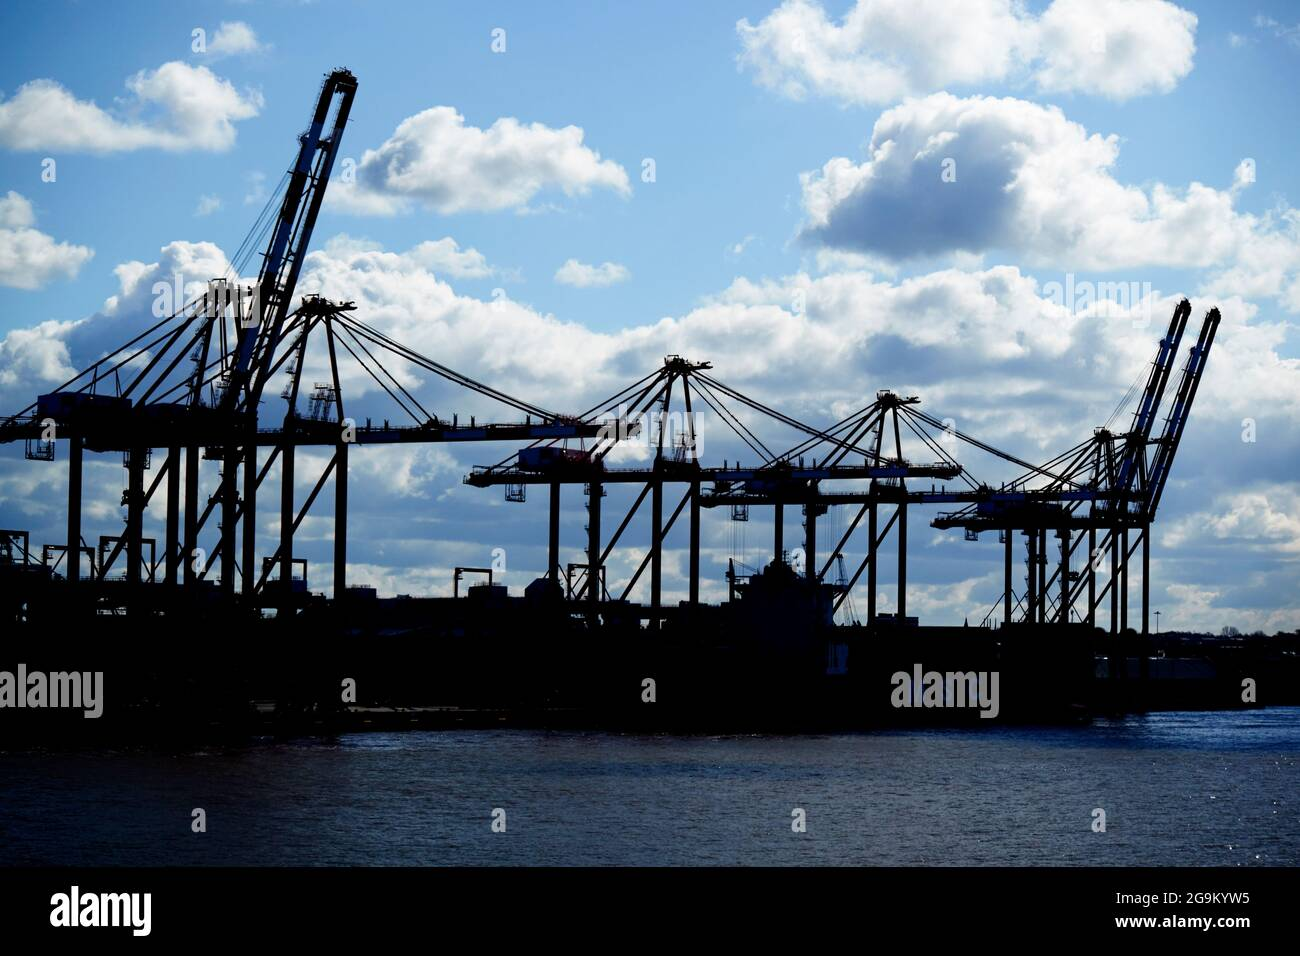 cranes at liverpool 2 container terminal freeport liverpool england uk Stock Photo